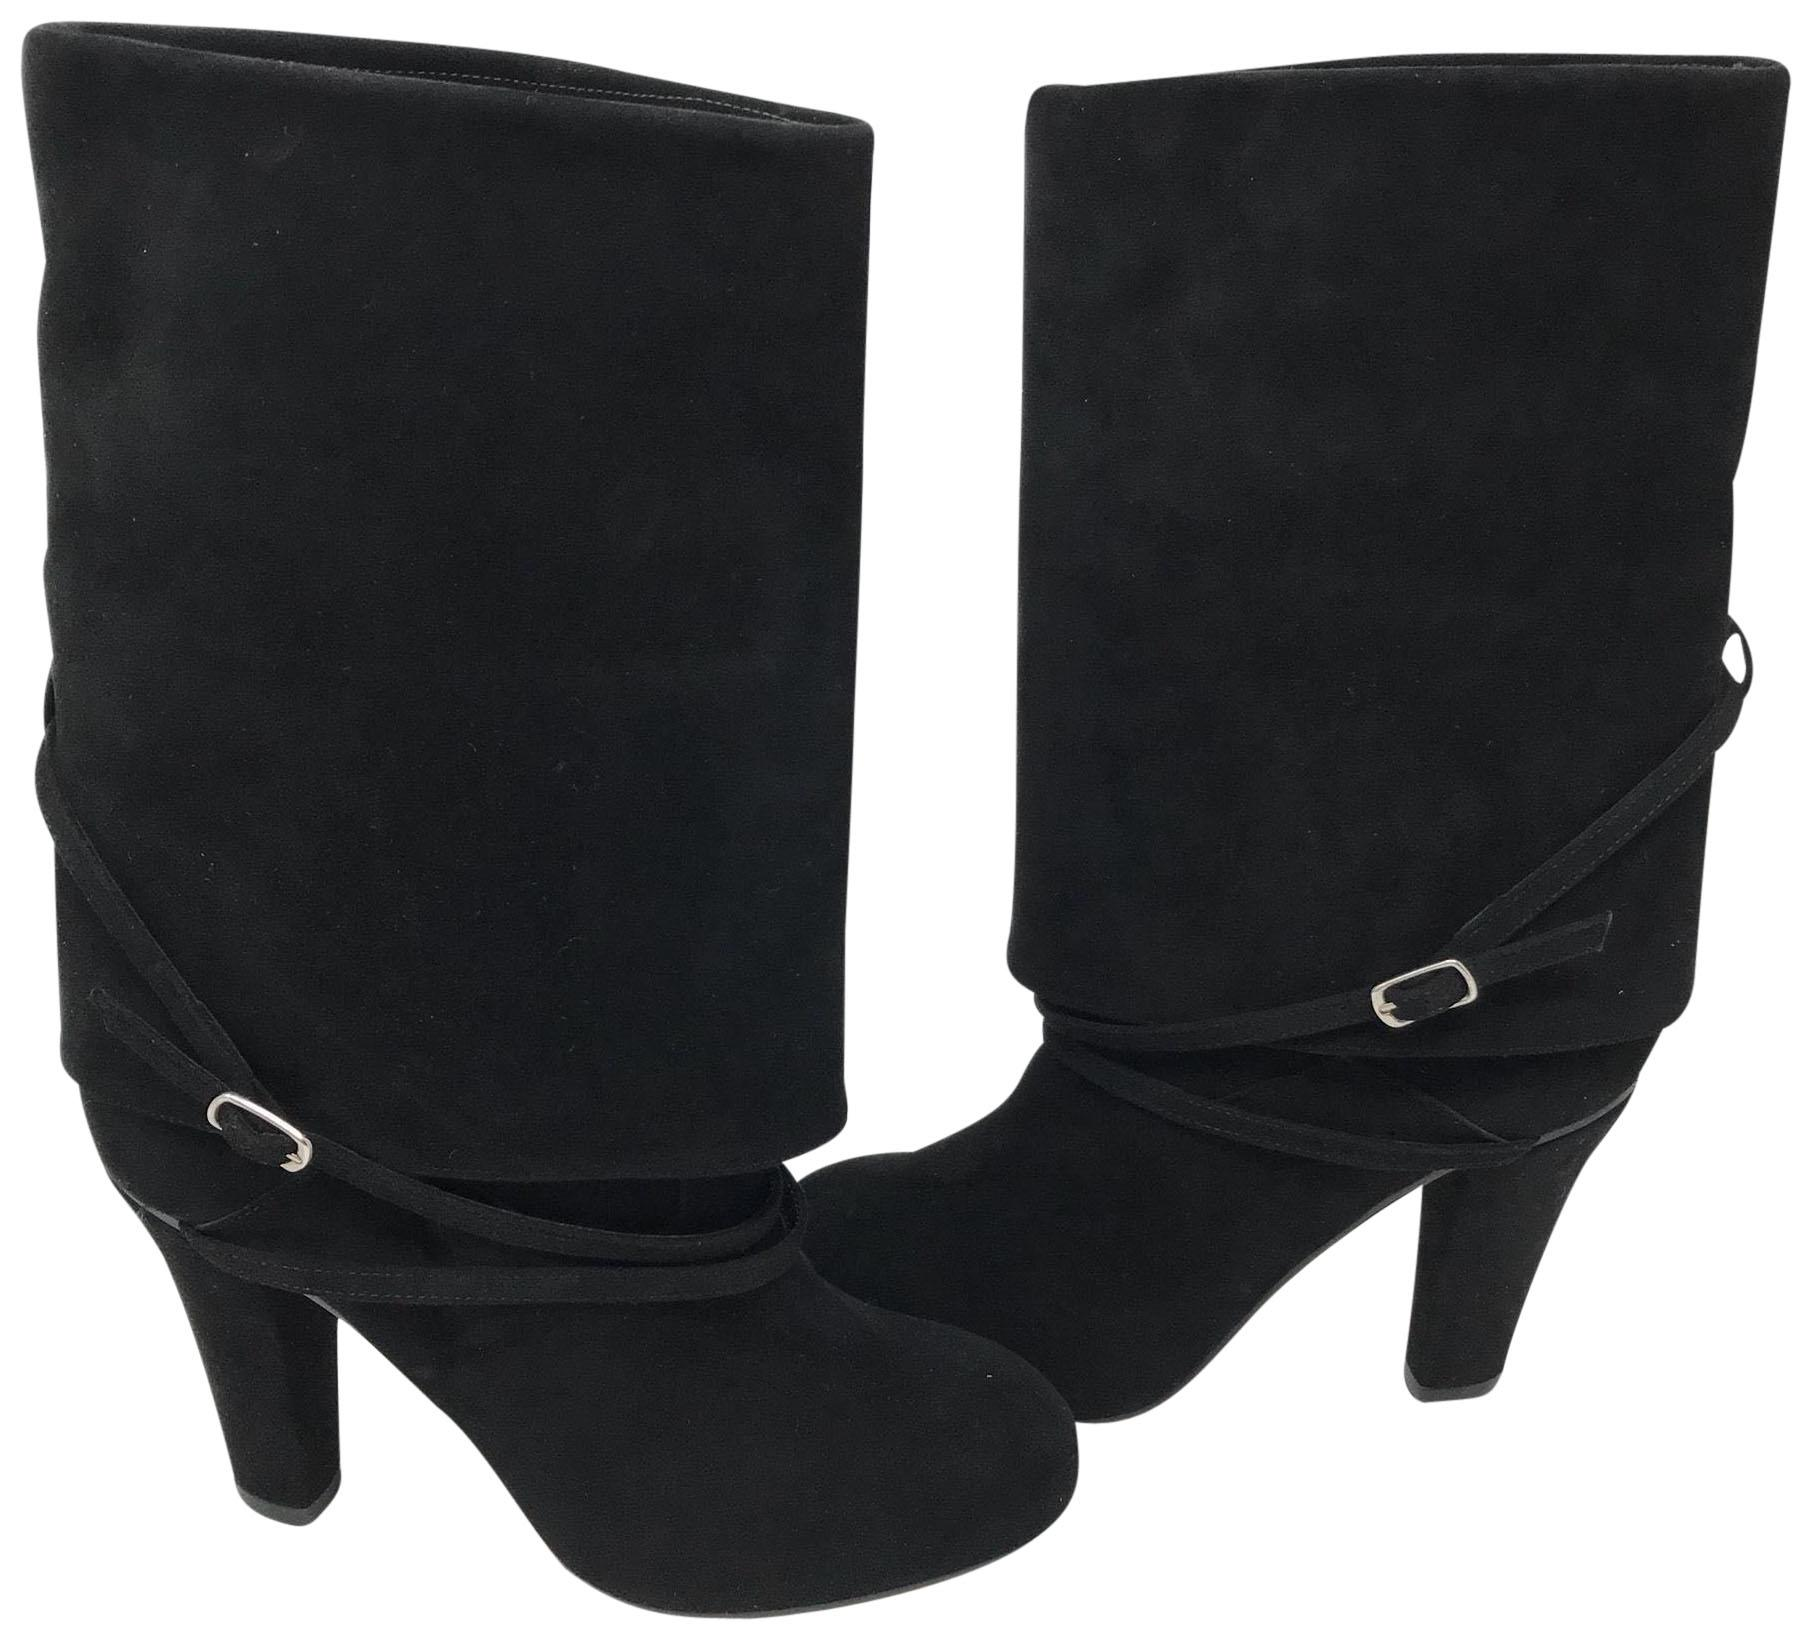 Chloé Black Suede Leather Boots/Booties Size EU 36 (Approx. US 6) Regular (M, B)